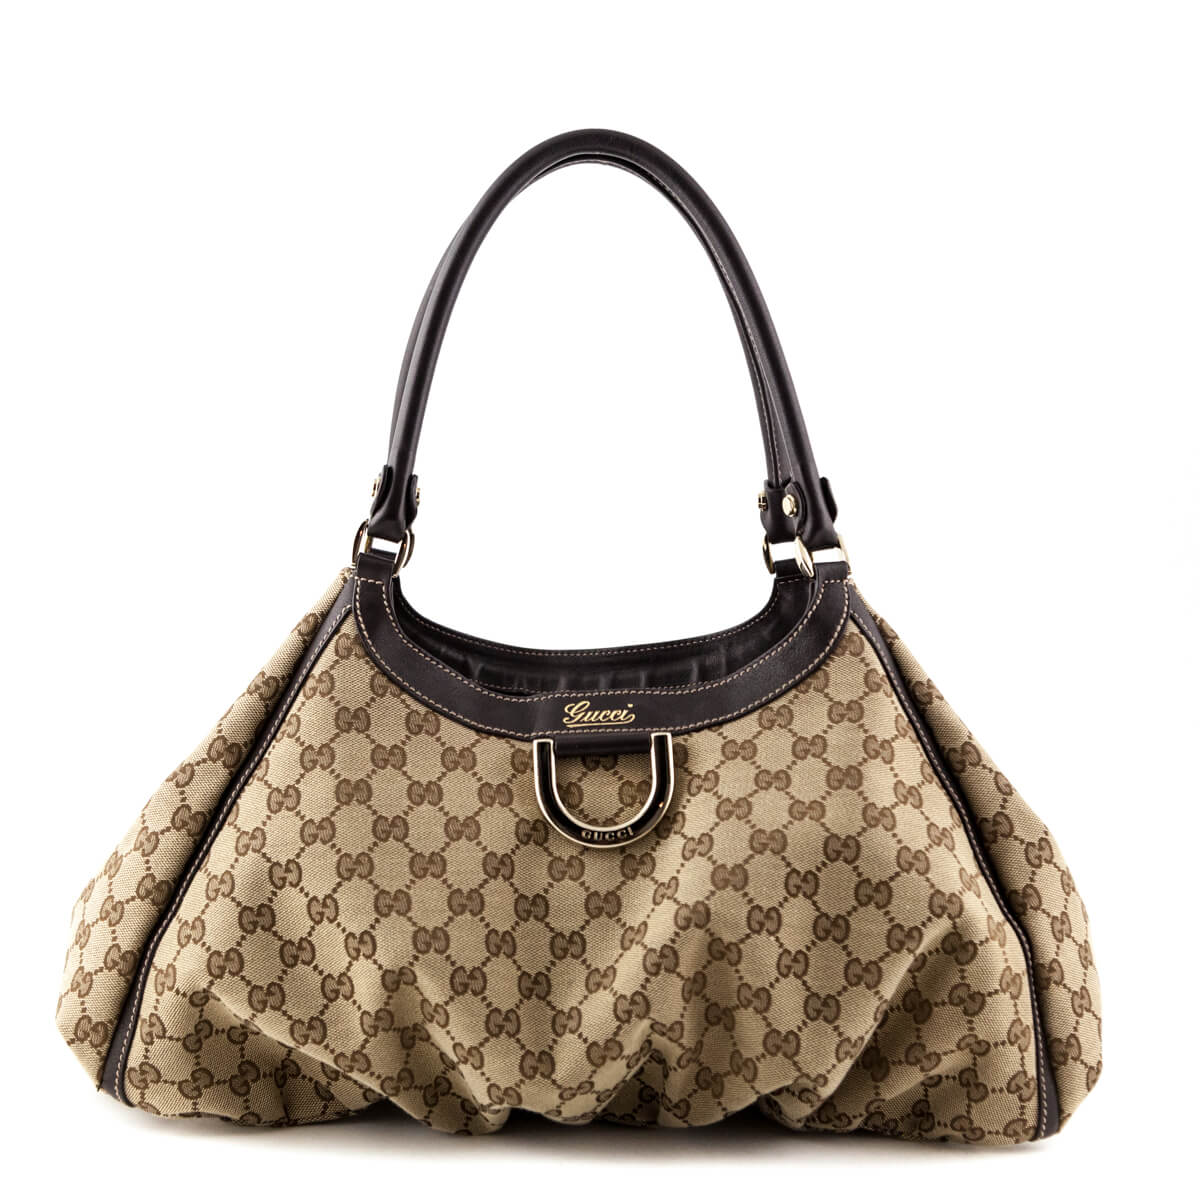 3d6820fe3 Gucci GG Large D-Ring Hobo Bag - LOVE that BAG - Preowned Authentic  Designer ...